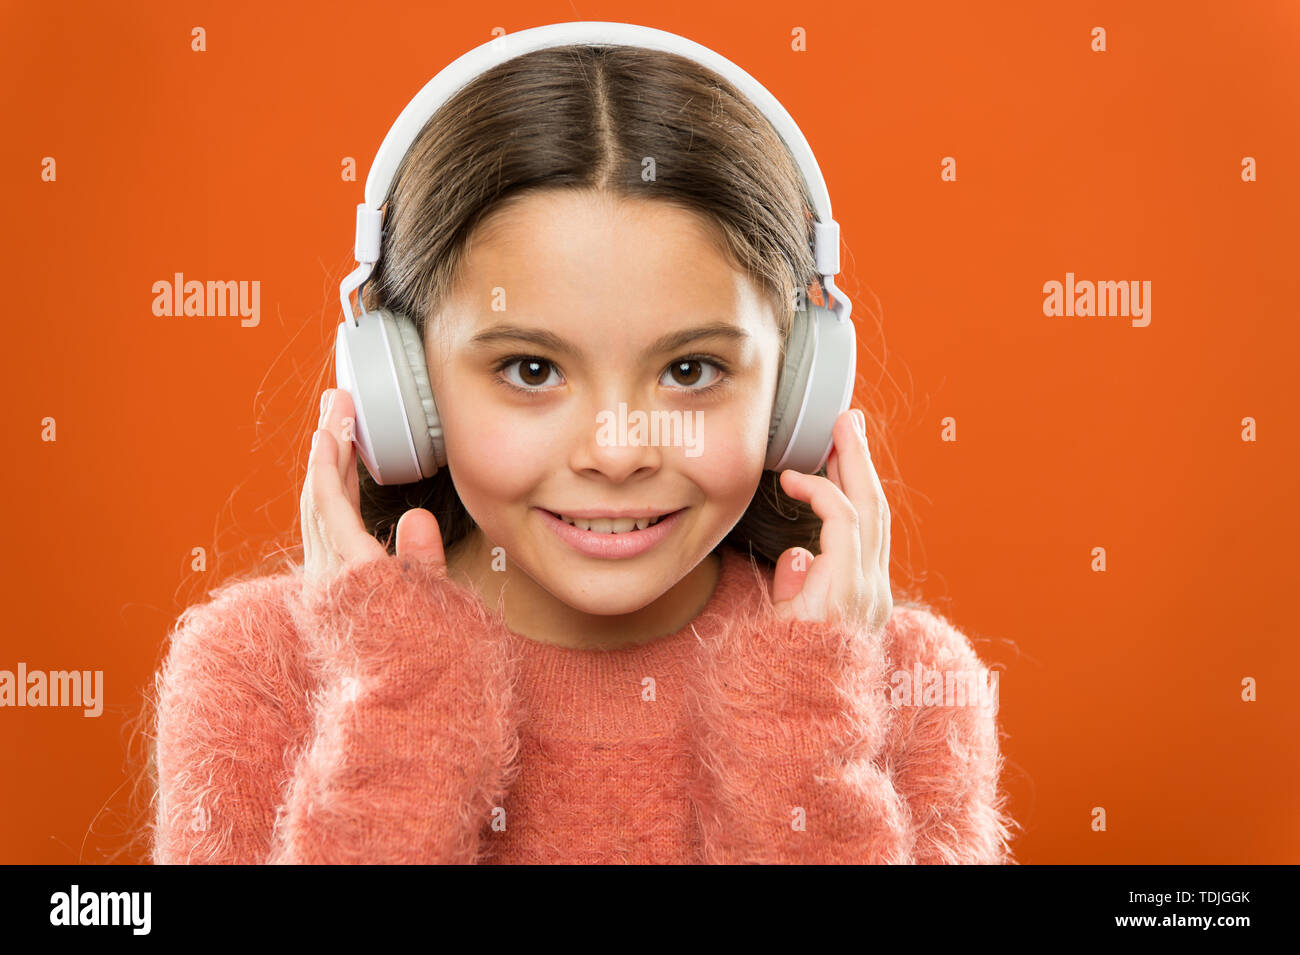 3baf54c30ce Modern music is her life style and pleasure. Little modern girl wearing bluetooth  headphones.